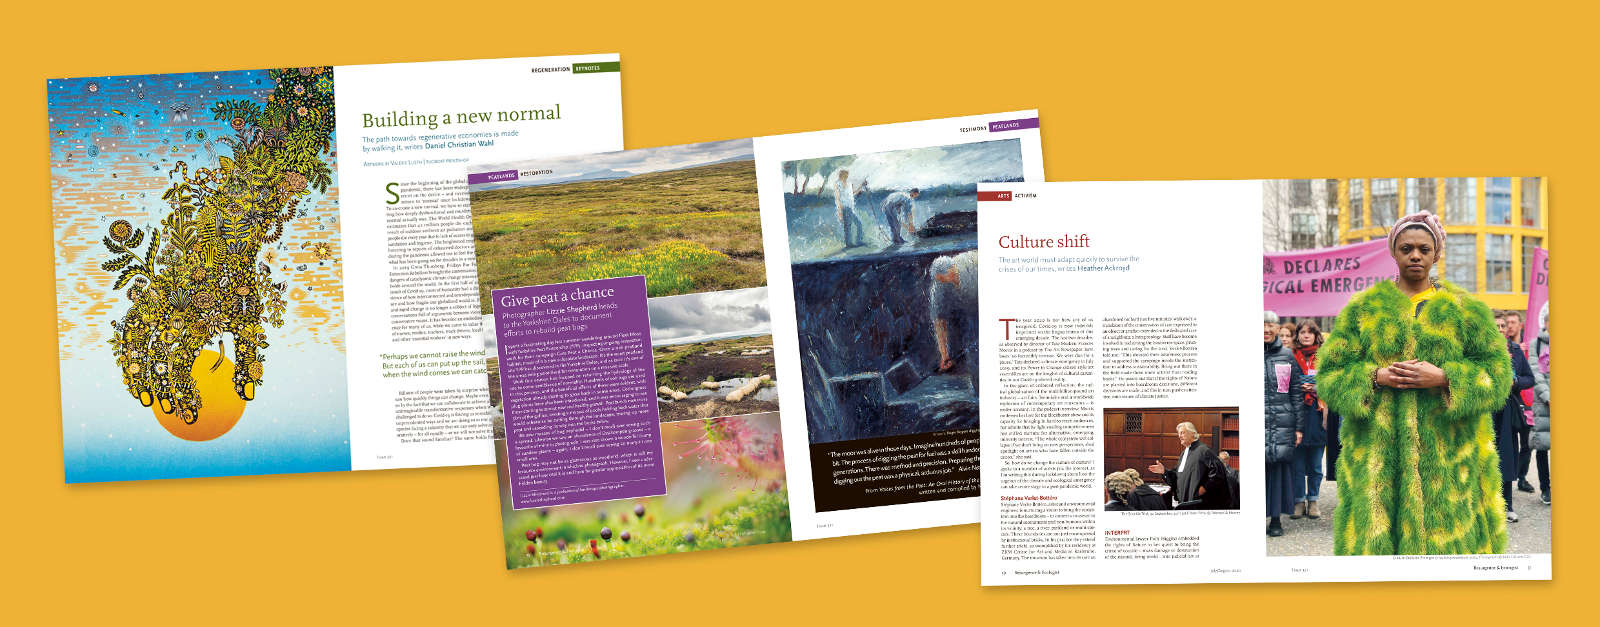 Images from Resurgence and Ecologist Magazine issue 321